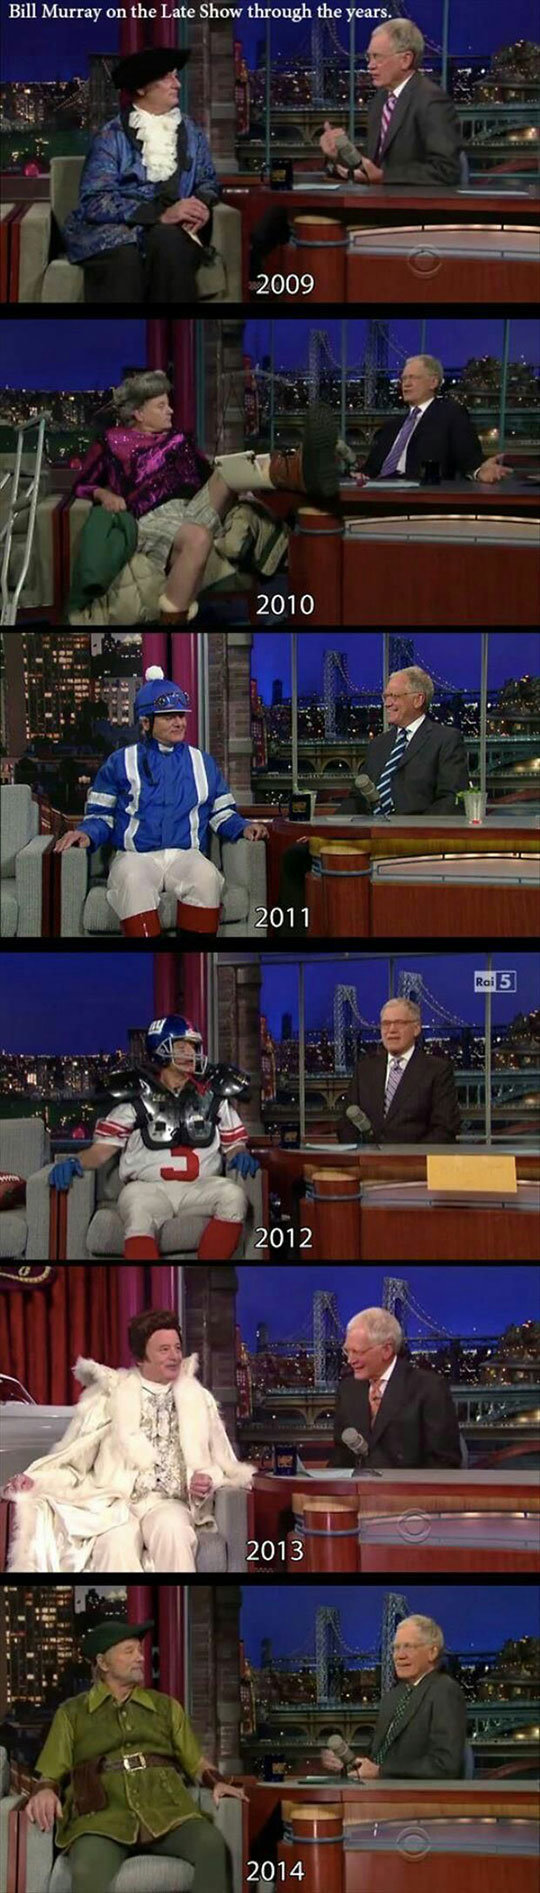 The Legendary Bill Murray. . on the Late Show through thebeard,, 2009 2011 2012